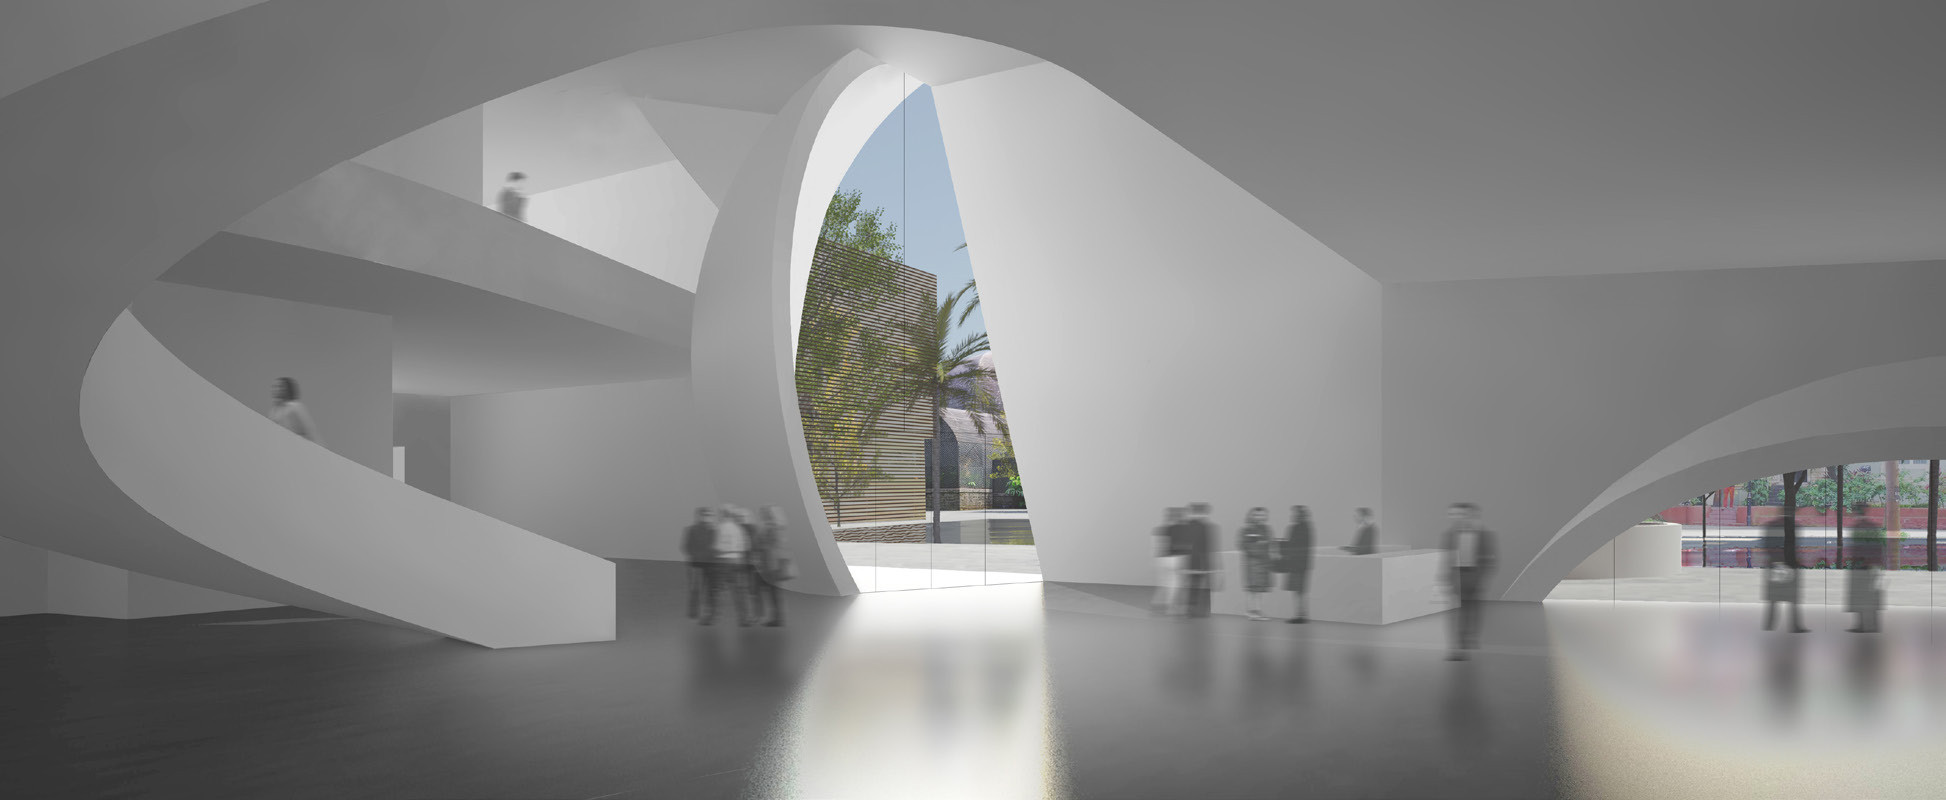 steven holl selected to design new wing for mumbai city